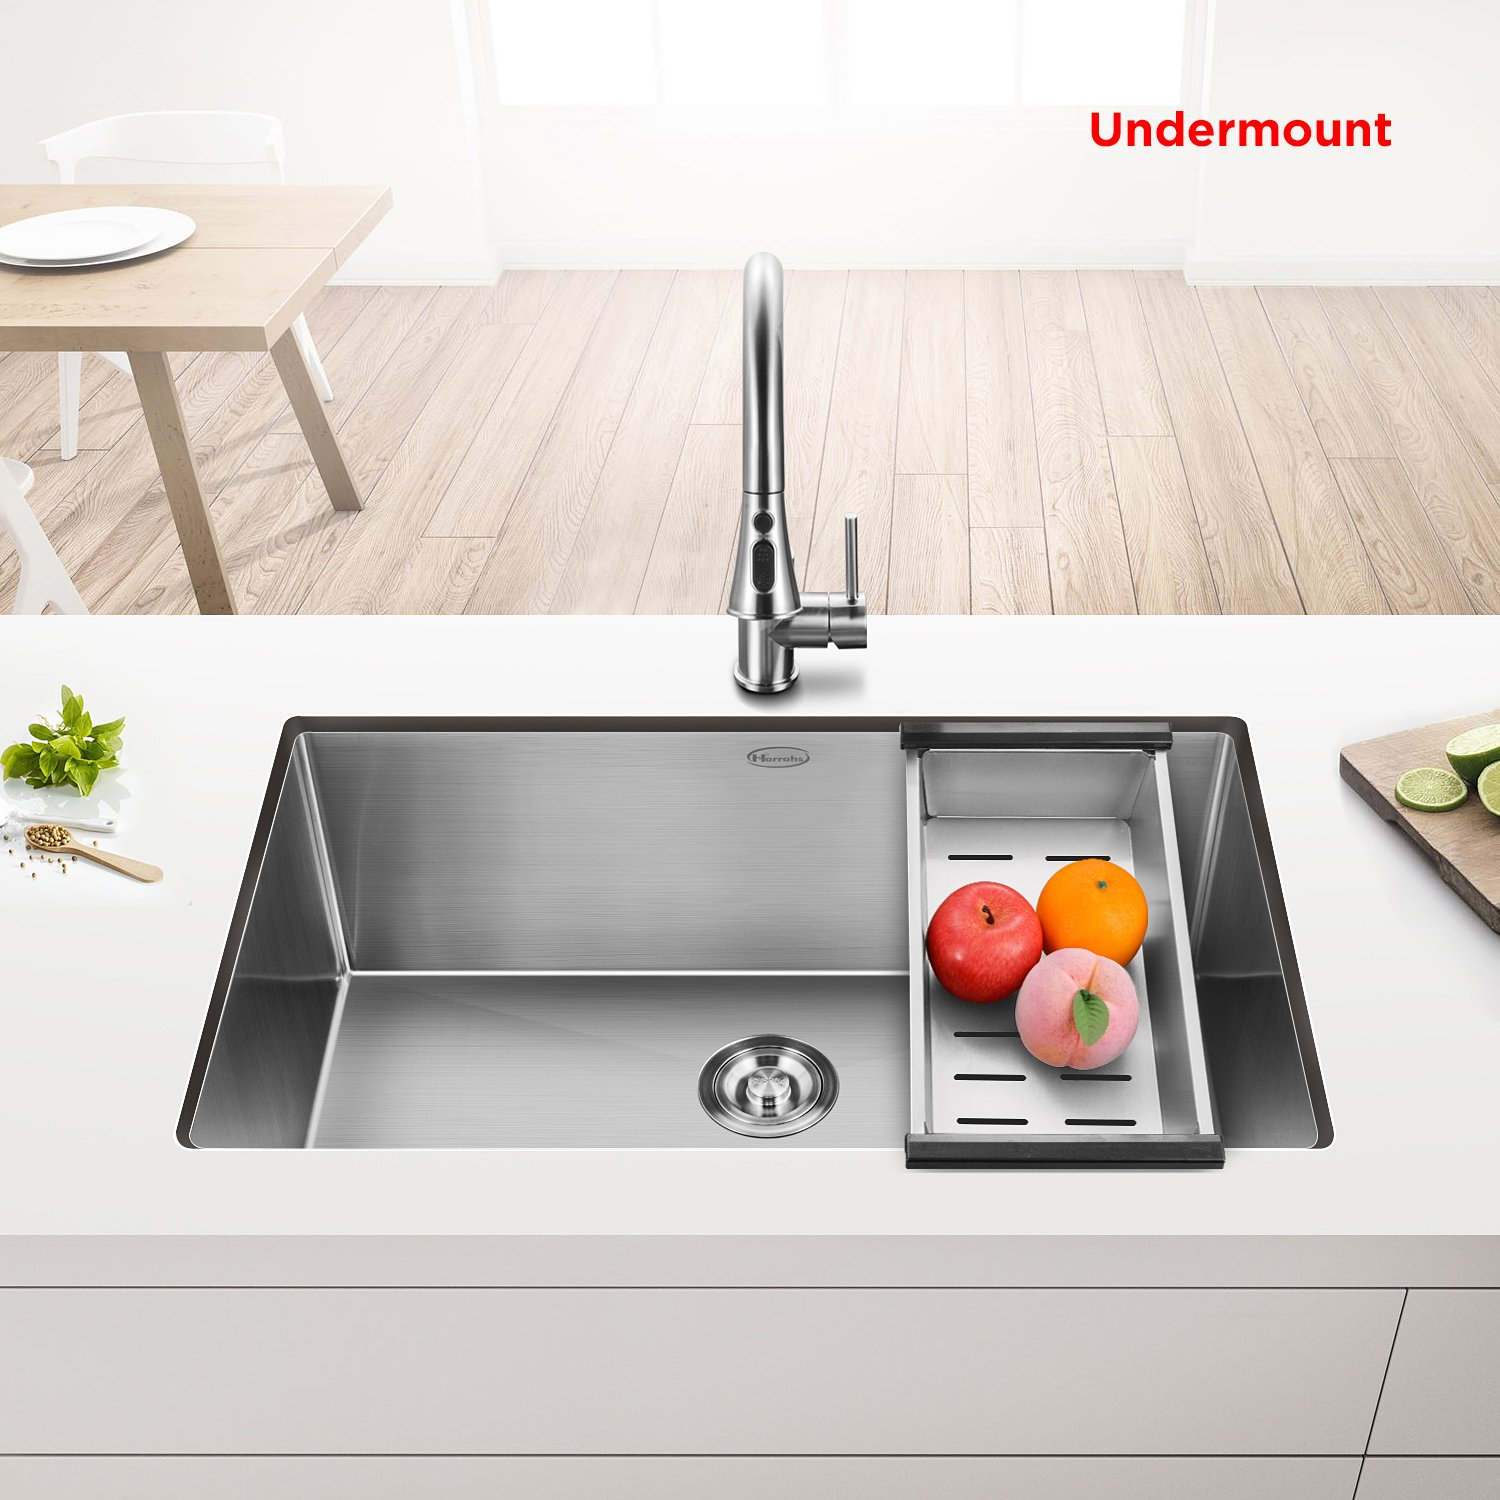 Commercial 30 Inch 10 Deep Stainless Steel Kitchen Sink Counter Model Requires Plumbing And Electrical Work Under Your Handmade Drop In Undermount Single Bowl 11g Lip 18 G Basin With Drain Strainer Grid